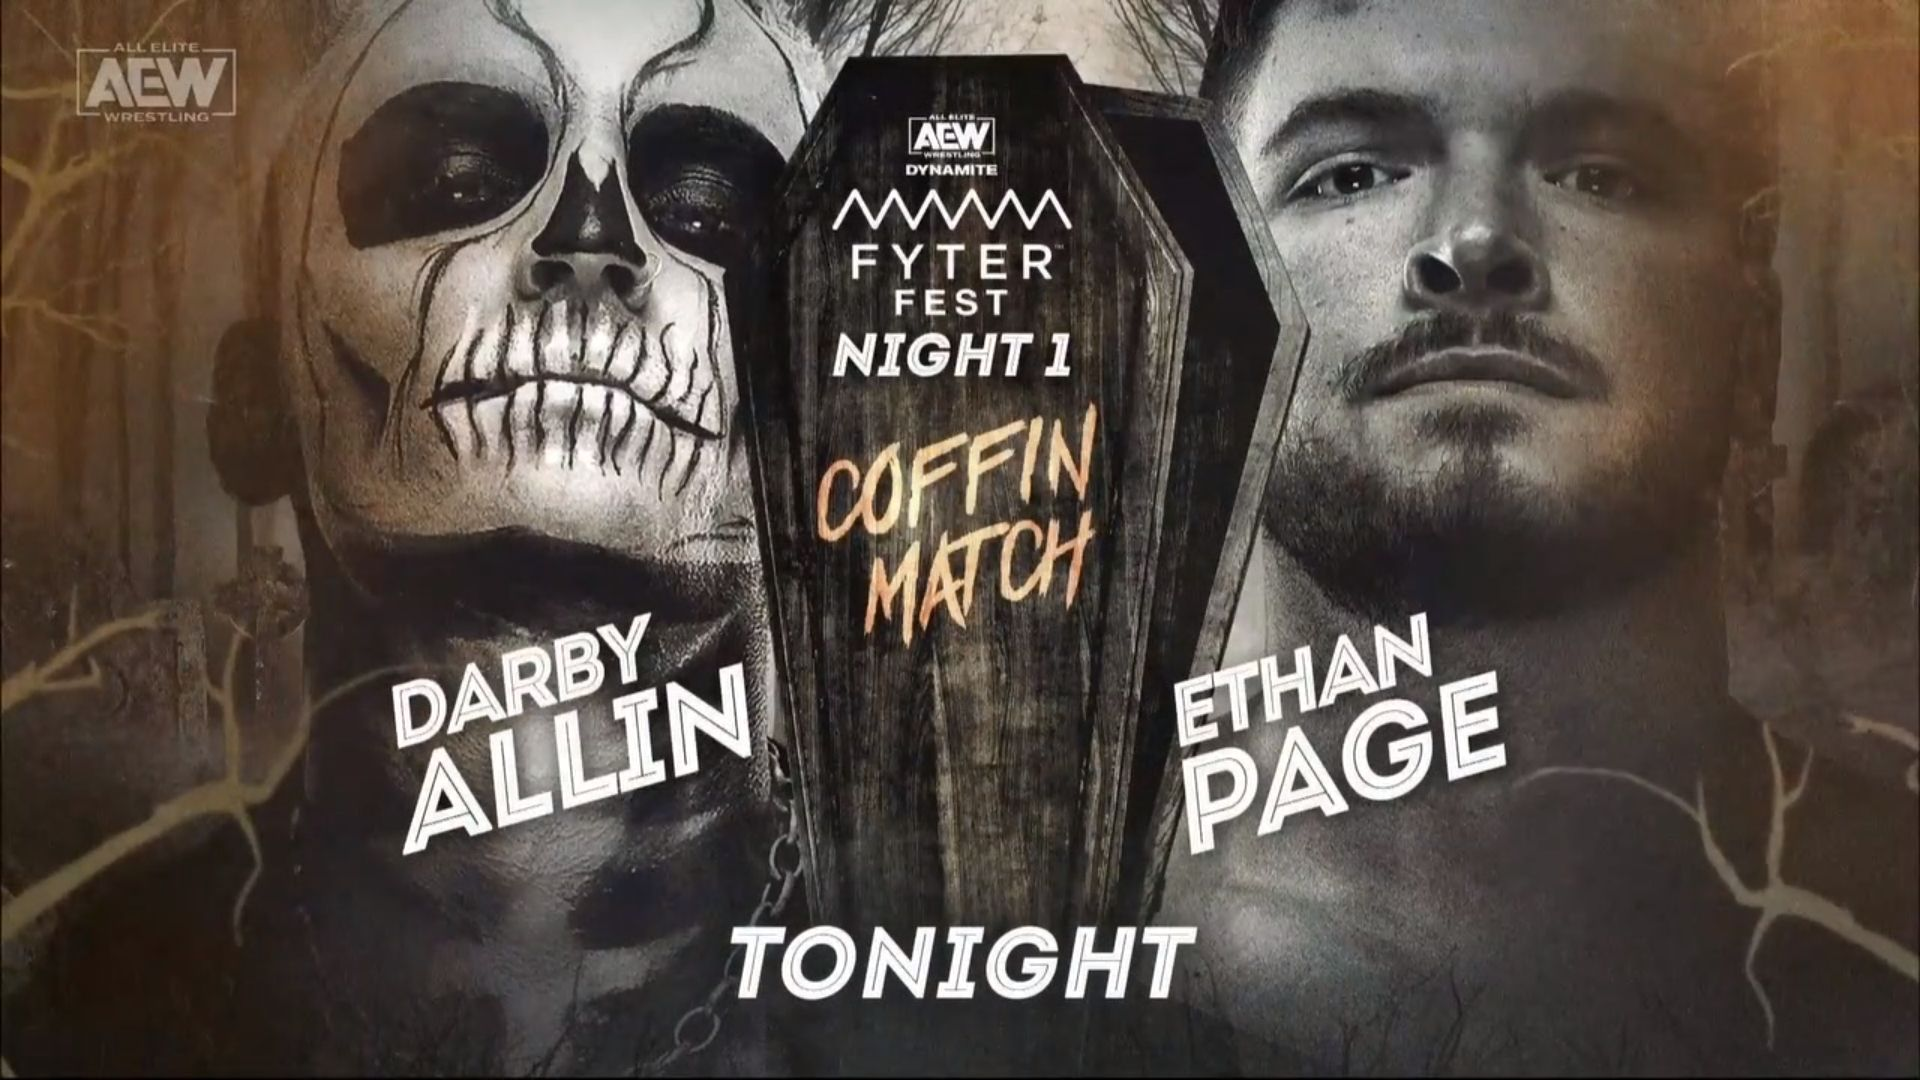 Darby Allin vs Ethan Page